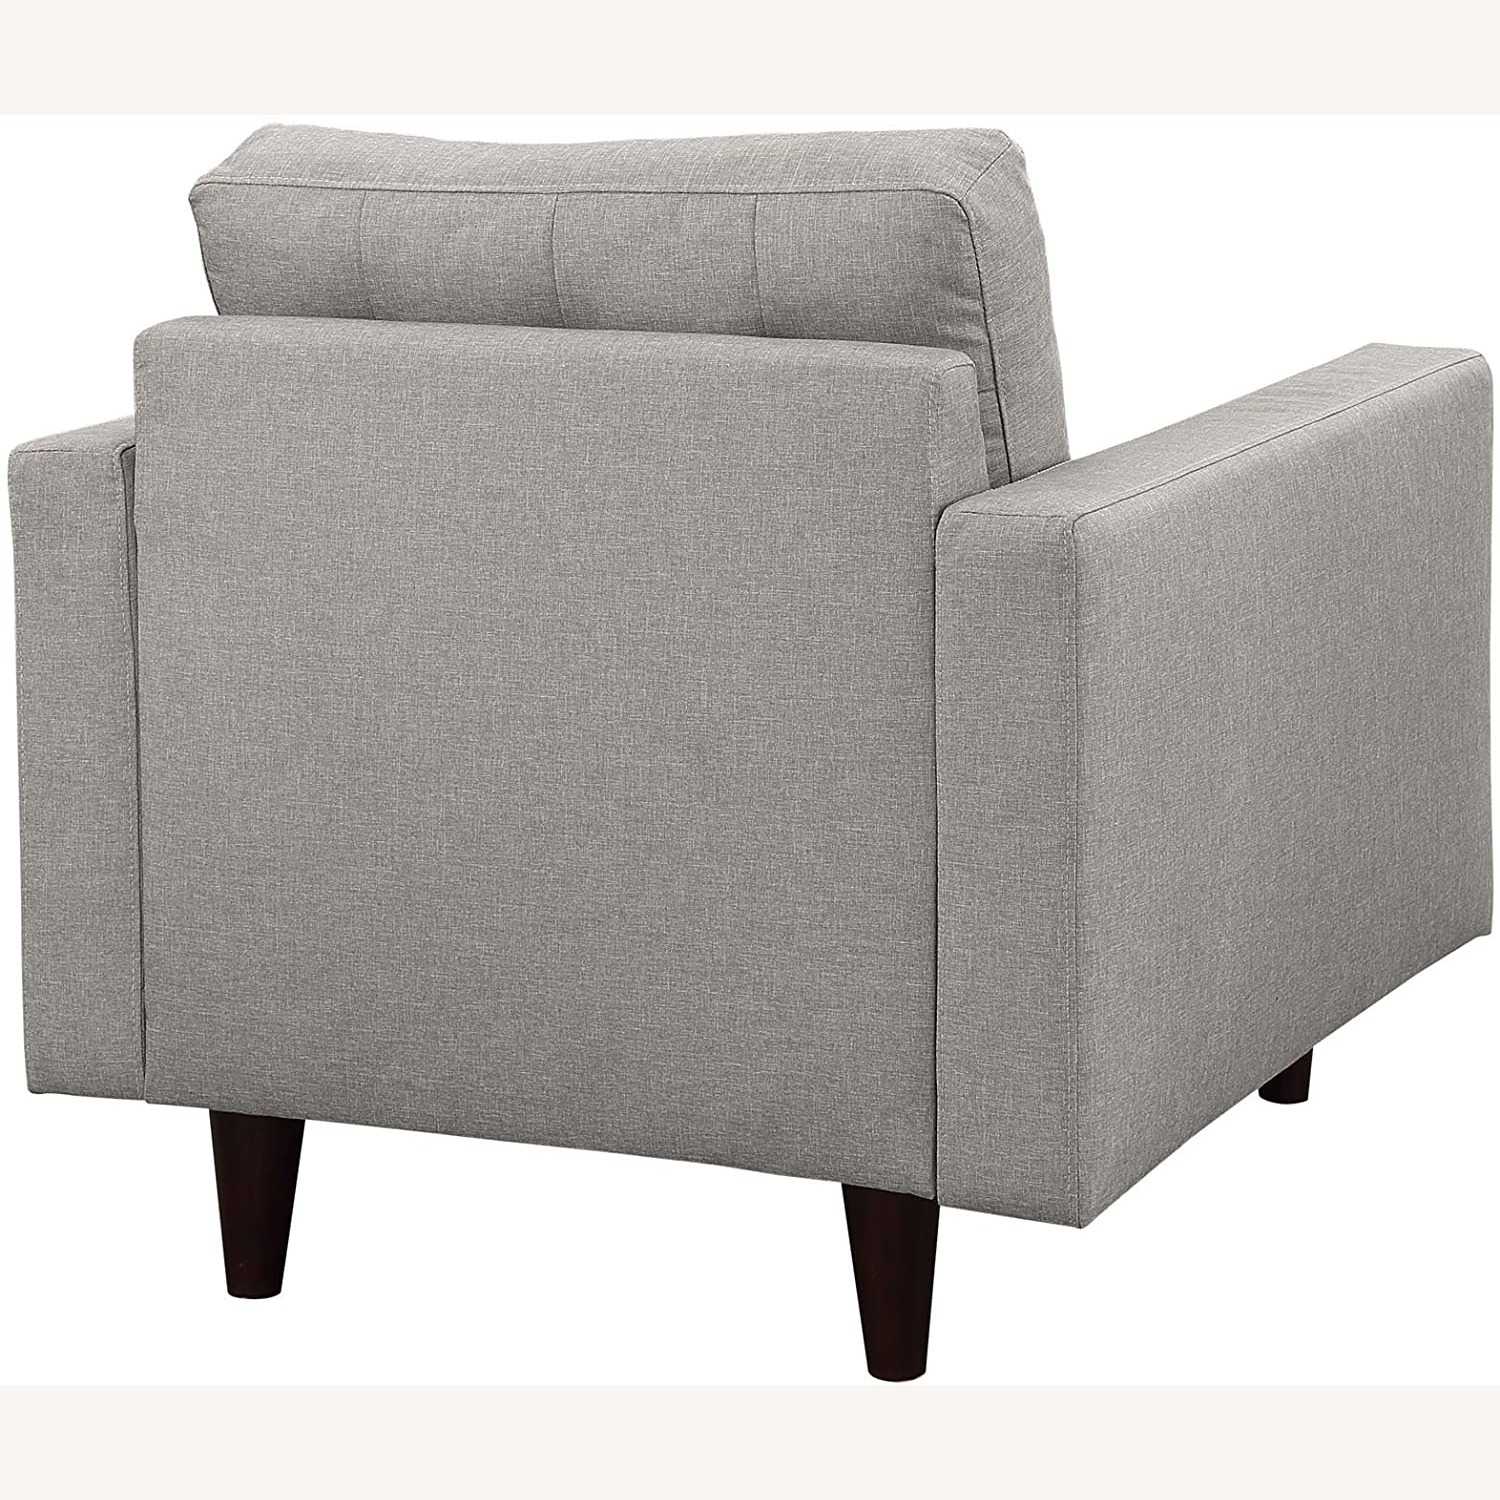 Armchair In Gray Upholstery W/ Tufted Buttons - image-3